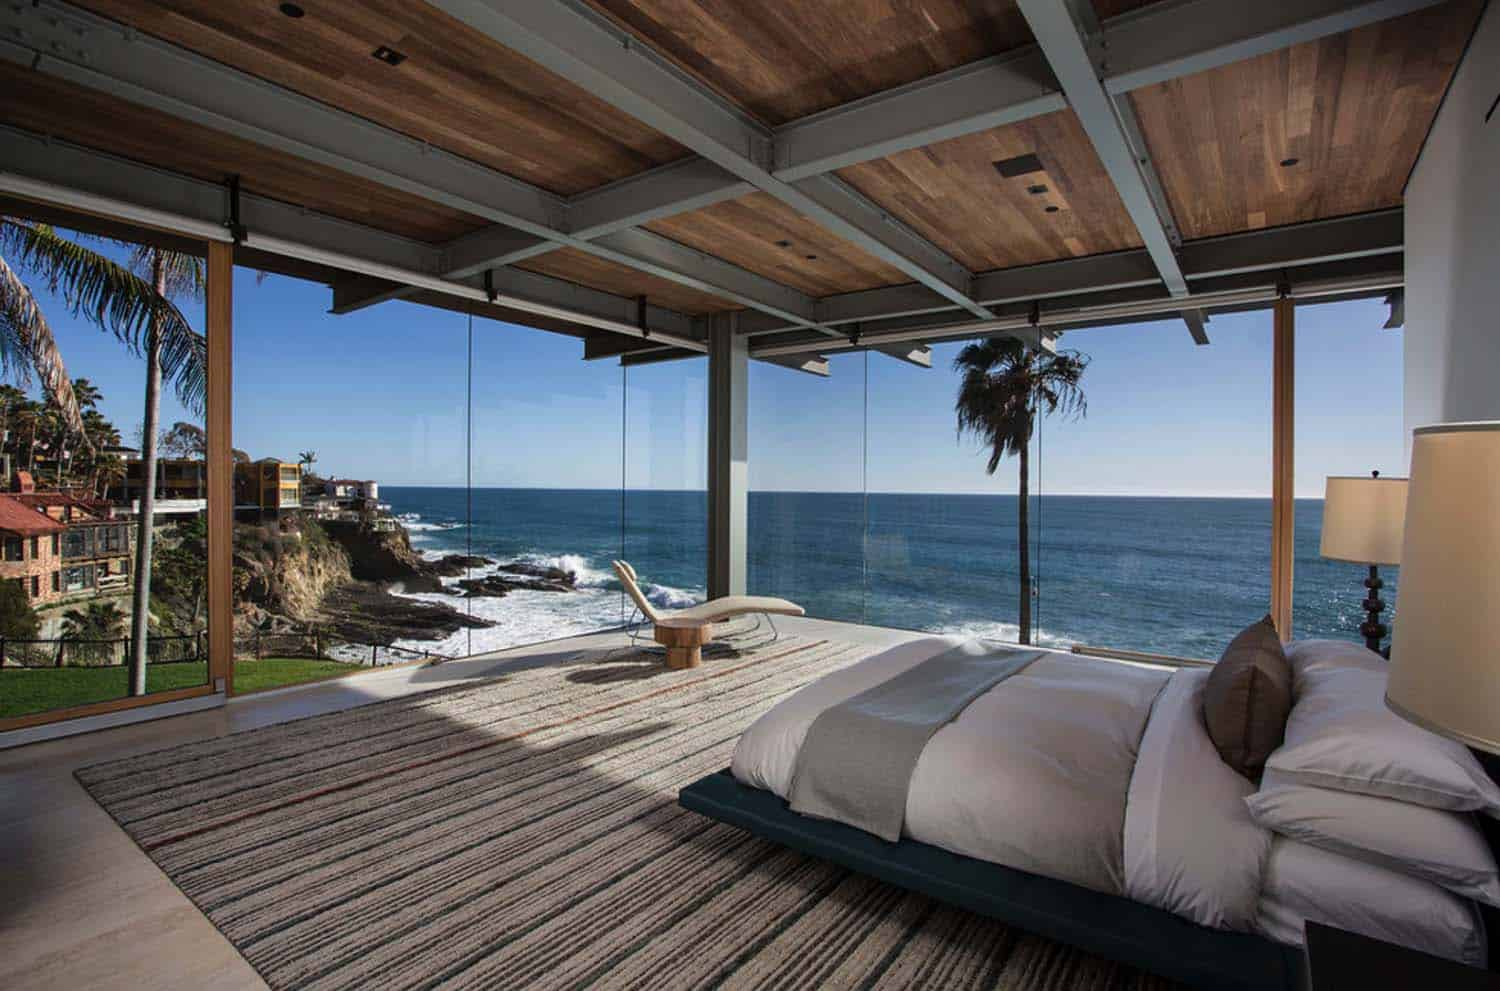 Bedroom With Ocean Views-21-1 Kindesign